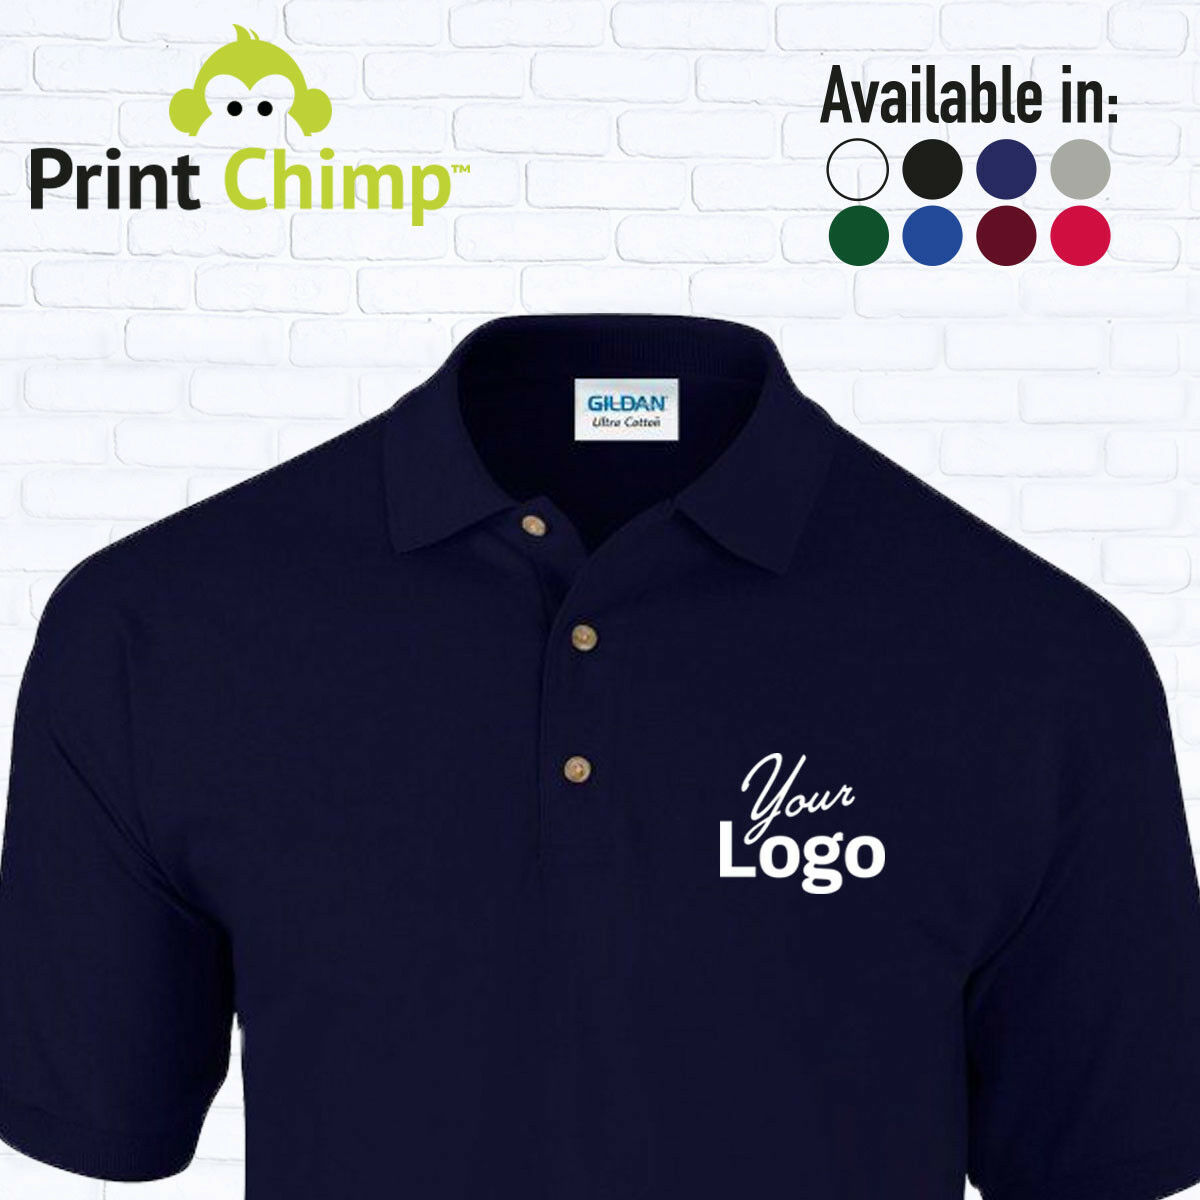 Personalised Polo Shirt Printed With Your Logo Customised Workwear Printing 1 Of 9 See More